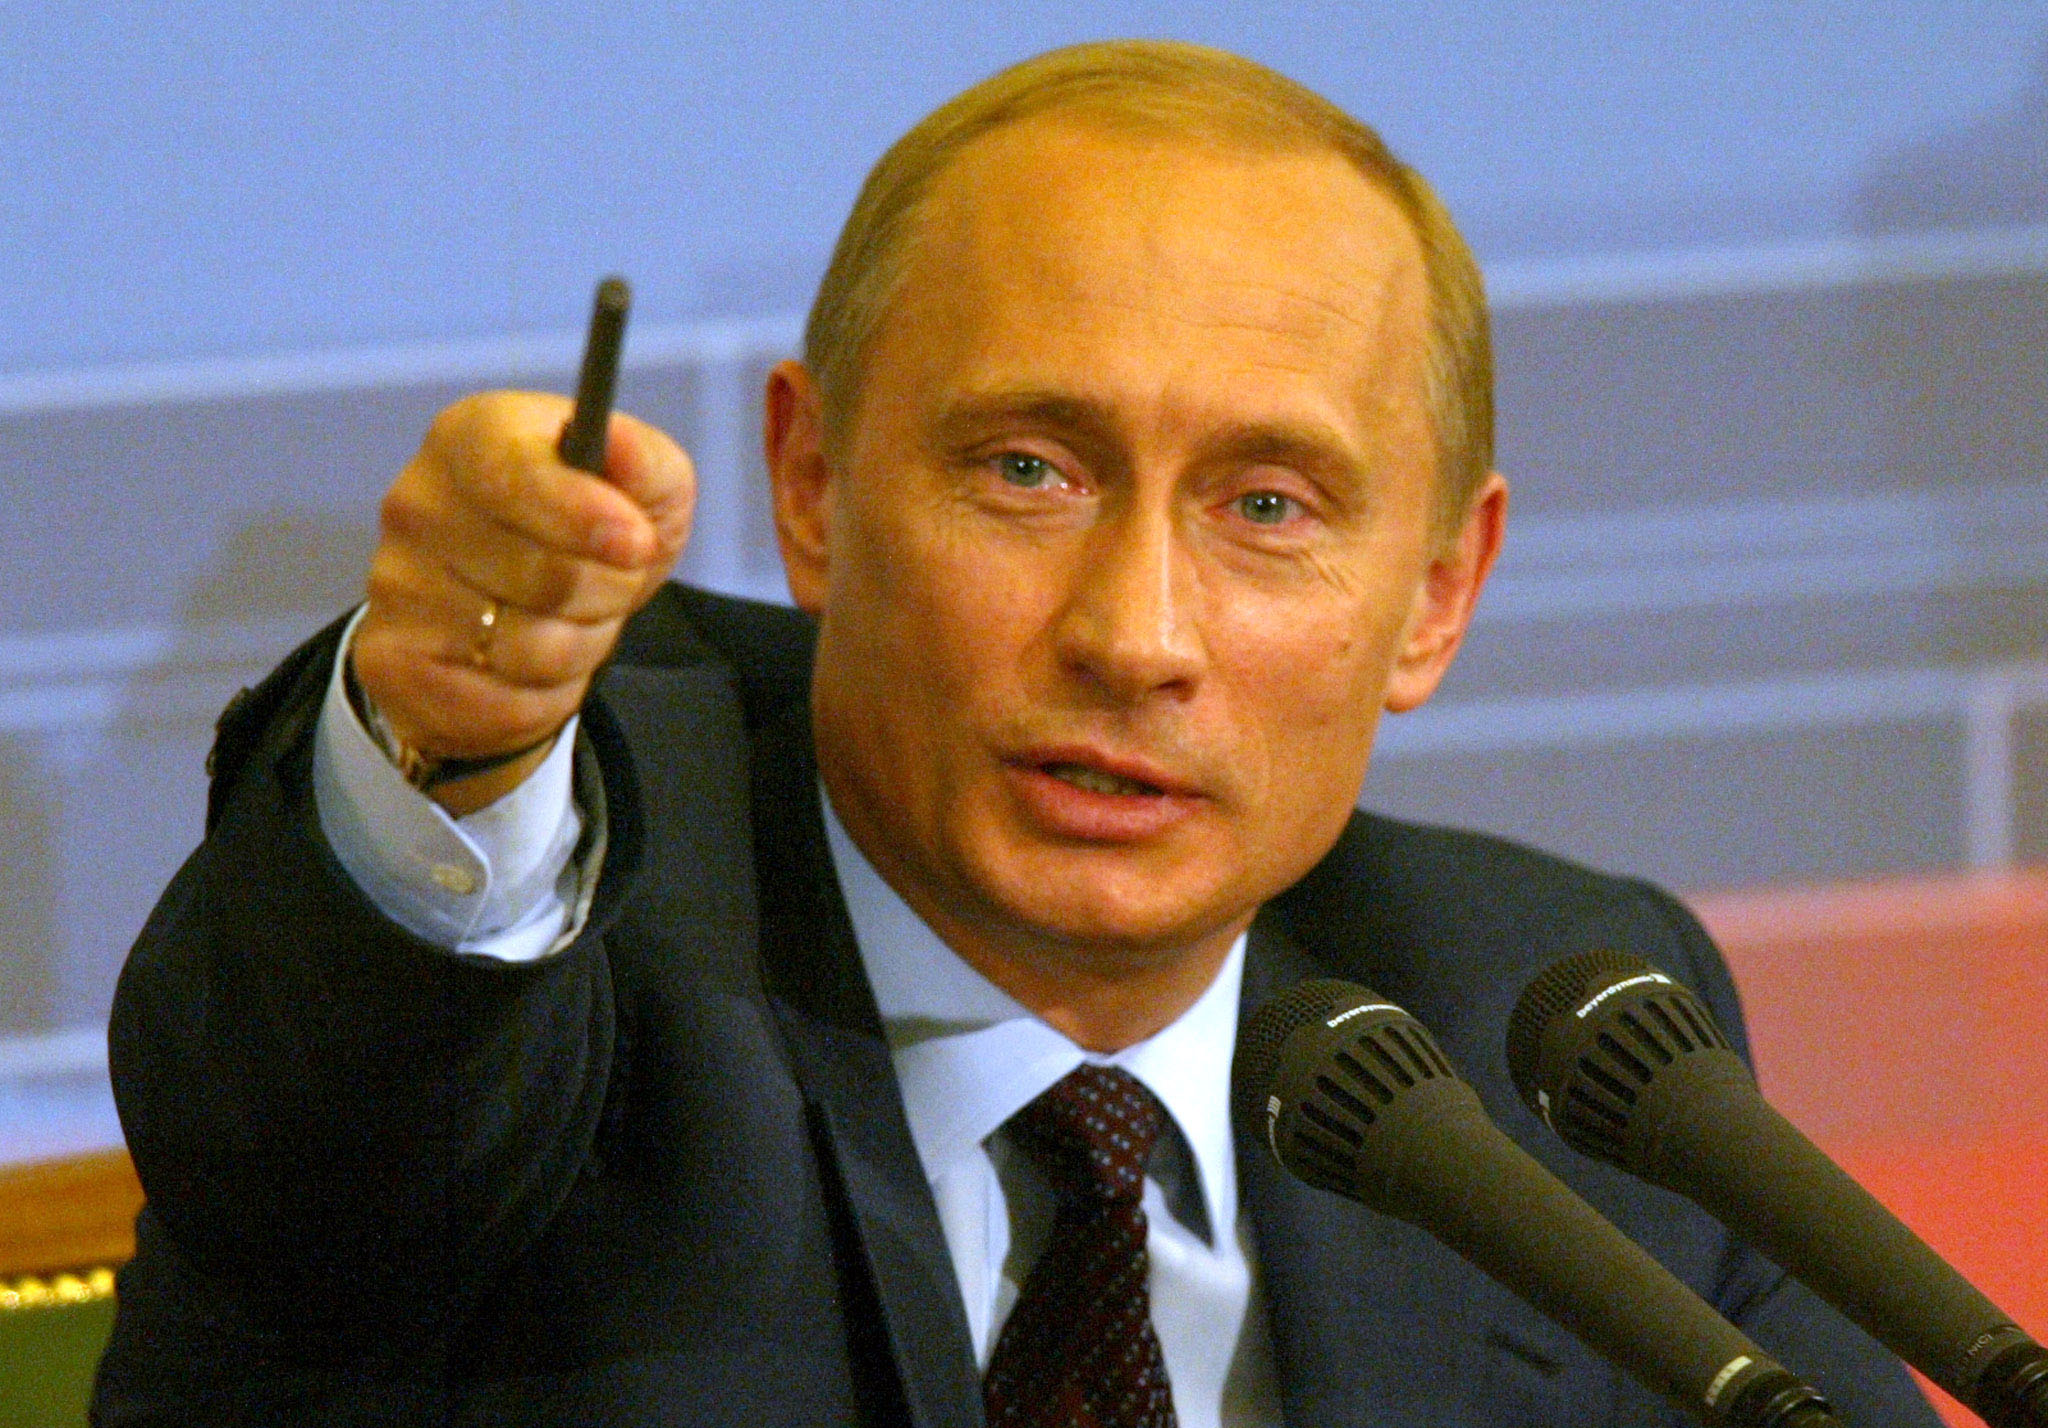 Vladimir Putin. Wikipedia. Creative Commons